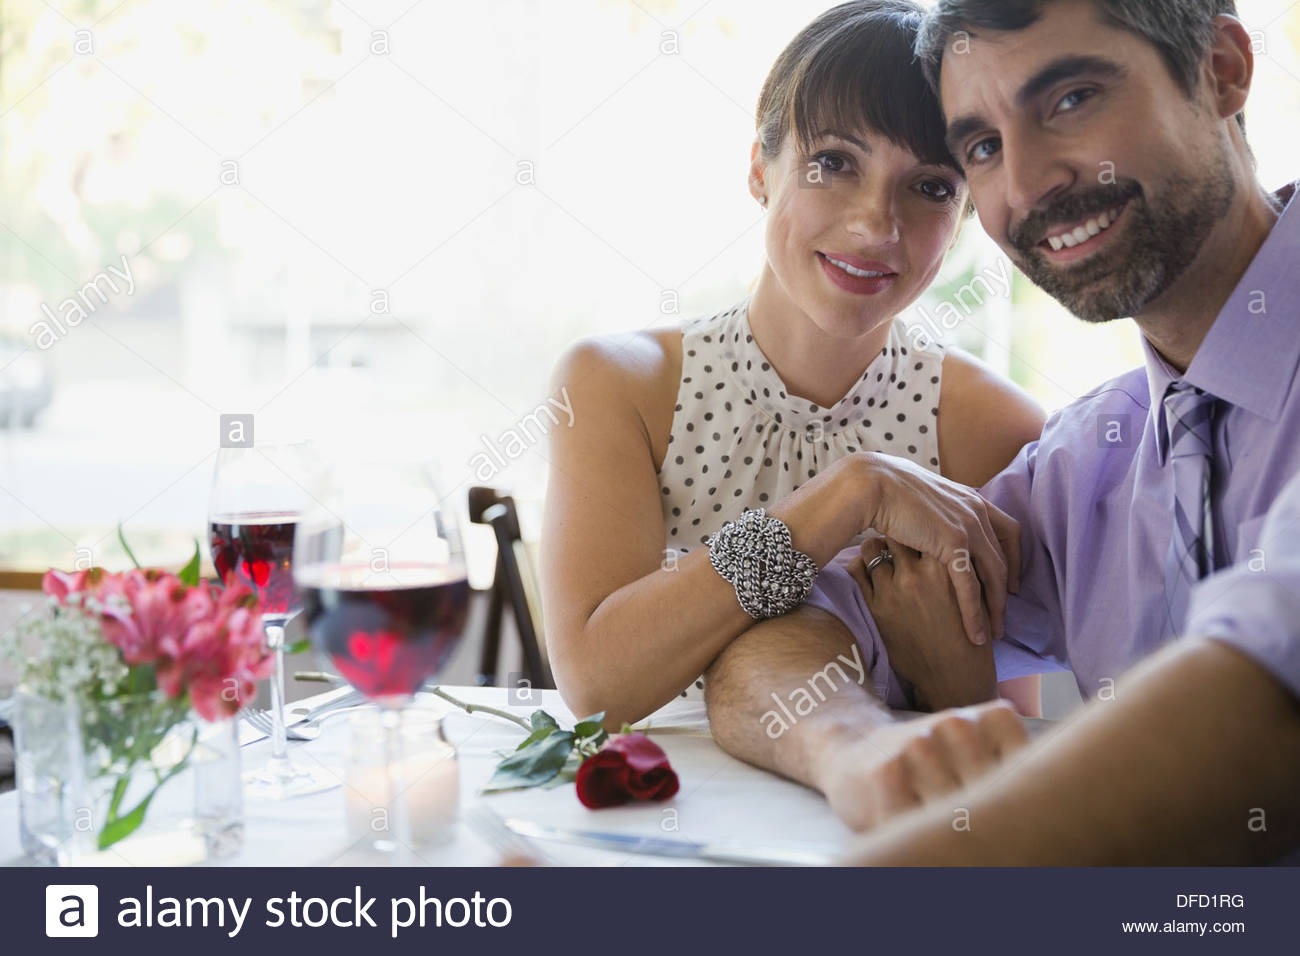 Portrait of smiling professional couple sitting in restaurant - Stock Image